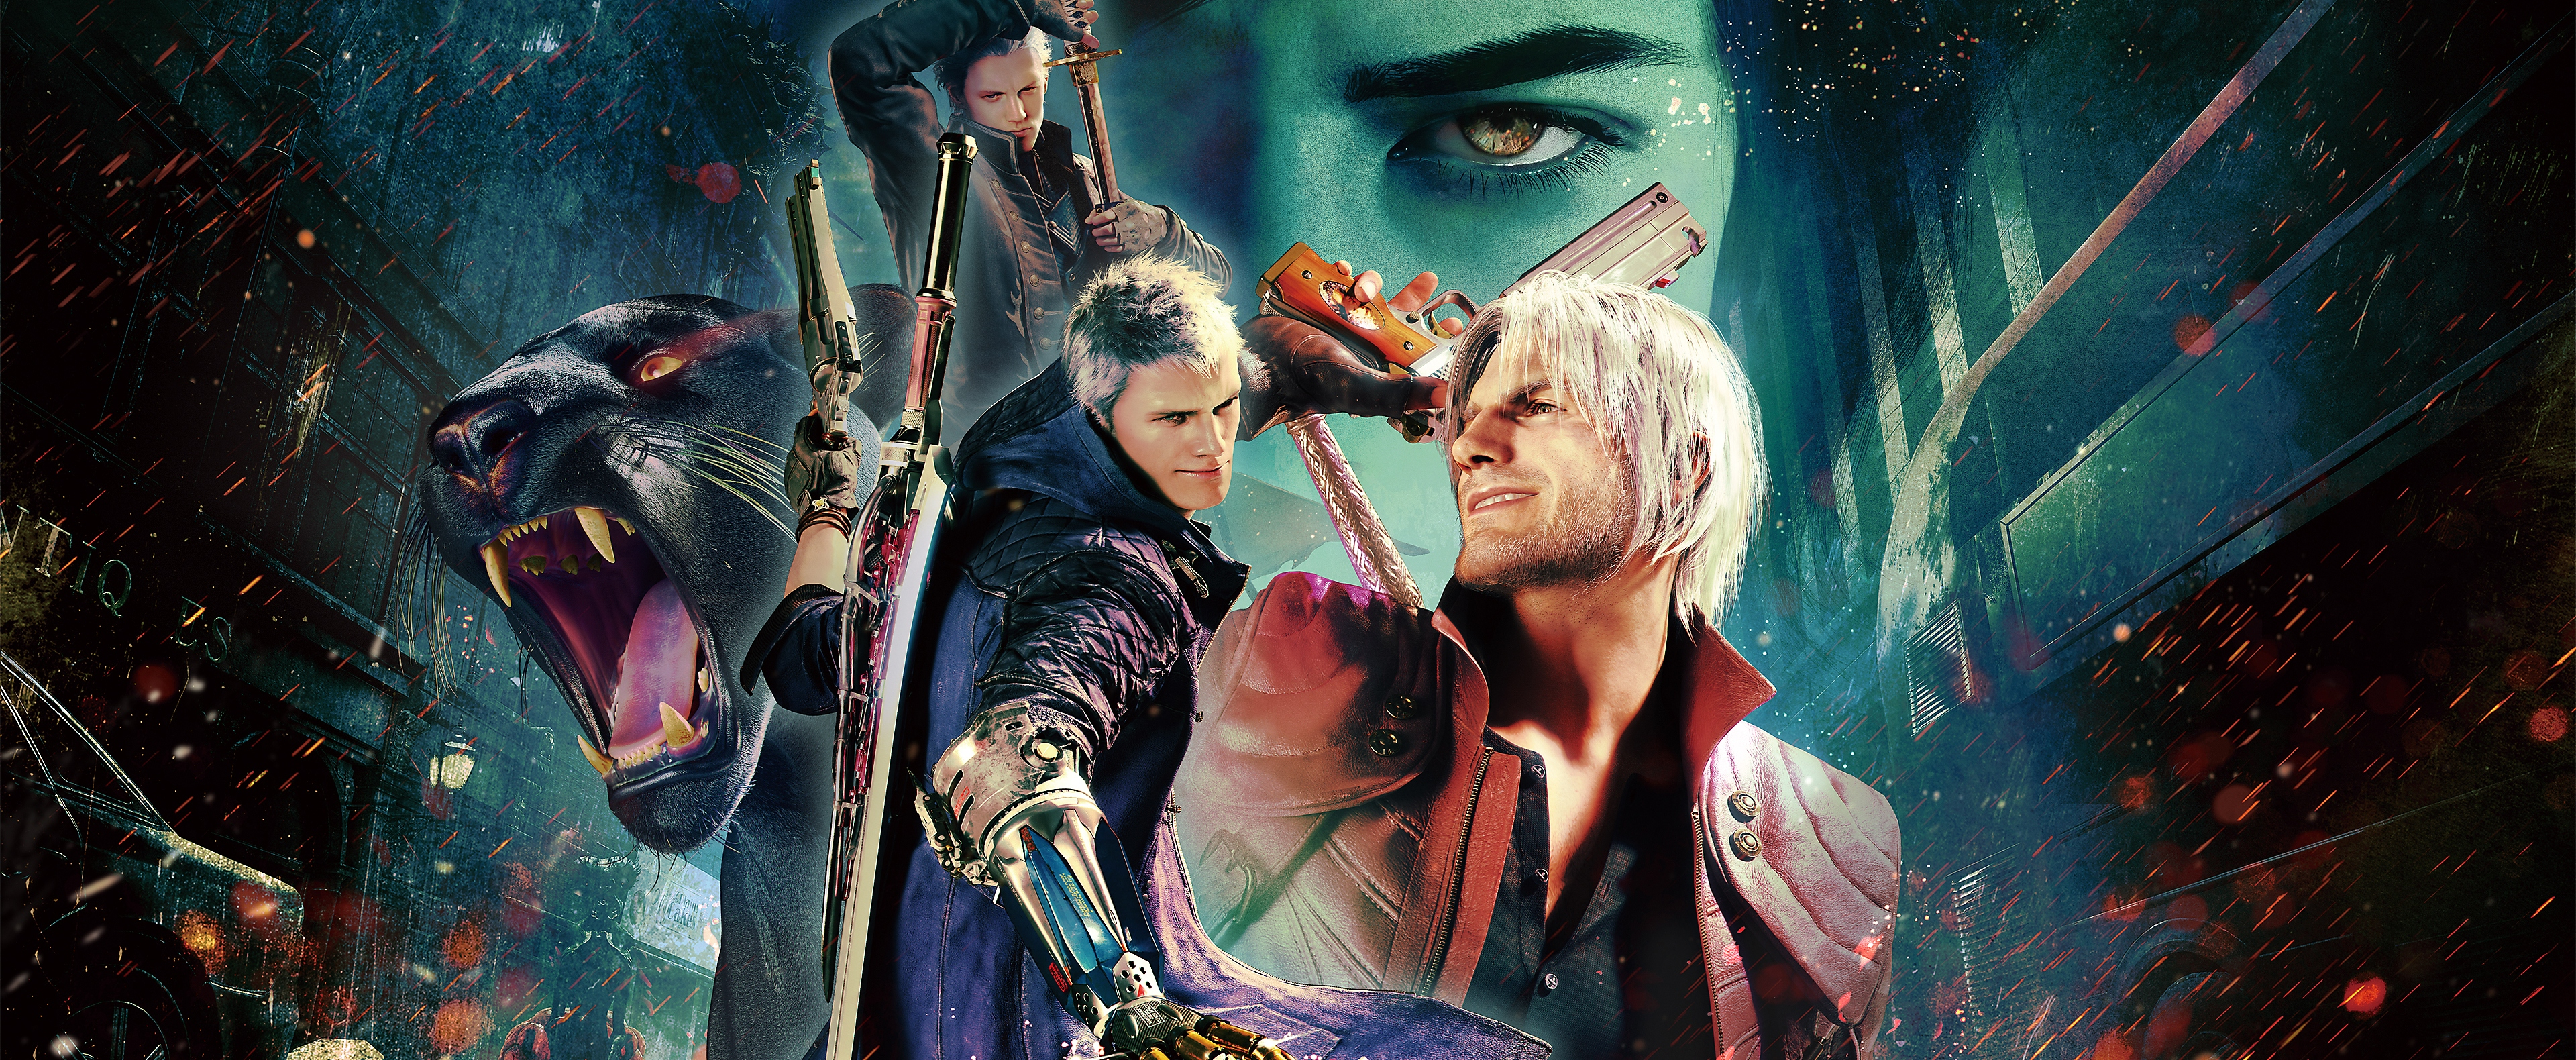 Devil May Cry 5: Special Edition - F11/risti-näppäin Art